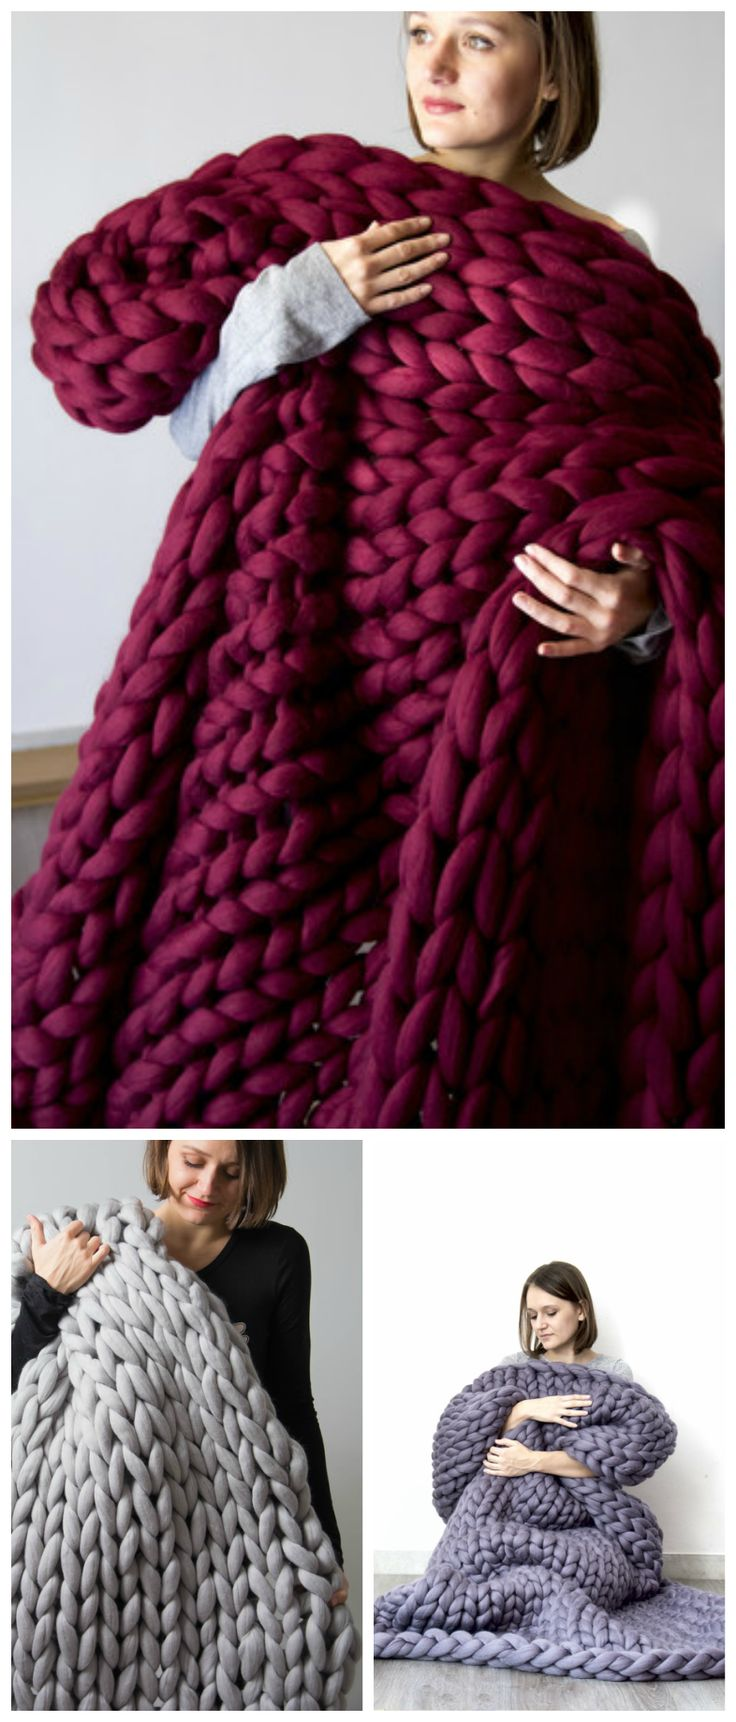 Kuschelige gestrickte Decke aus XXL-Wolle, außergewöhnliche Wohndeko / knitted blanket made of chunky, xxl yarn, woolen blanket made by bloisem via DaWanda.com